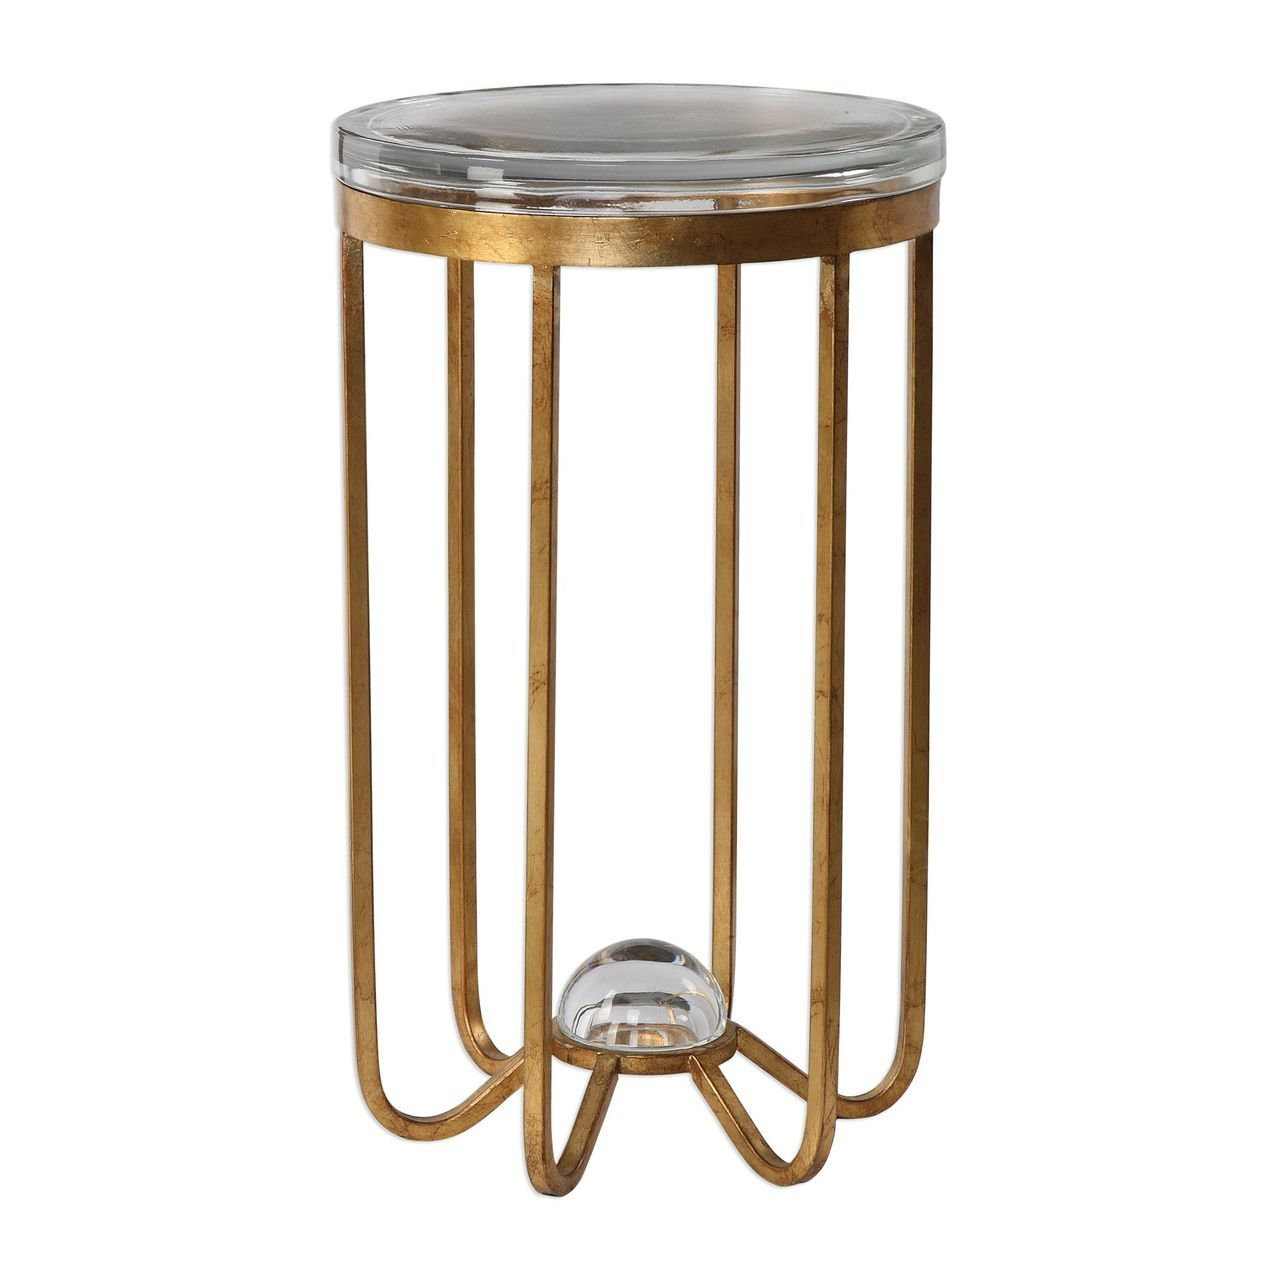 uttermost allura gold accent table isabelleslighting montrez inch tablecloth drum rack round fitted vinyl ashley rocker recliner making coffee farm dining with bench dale tiffany